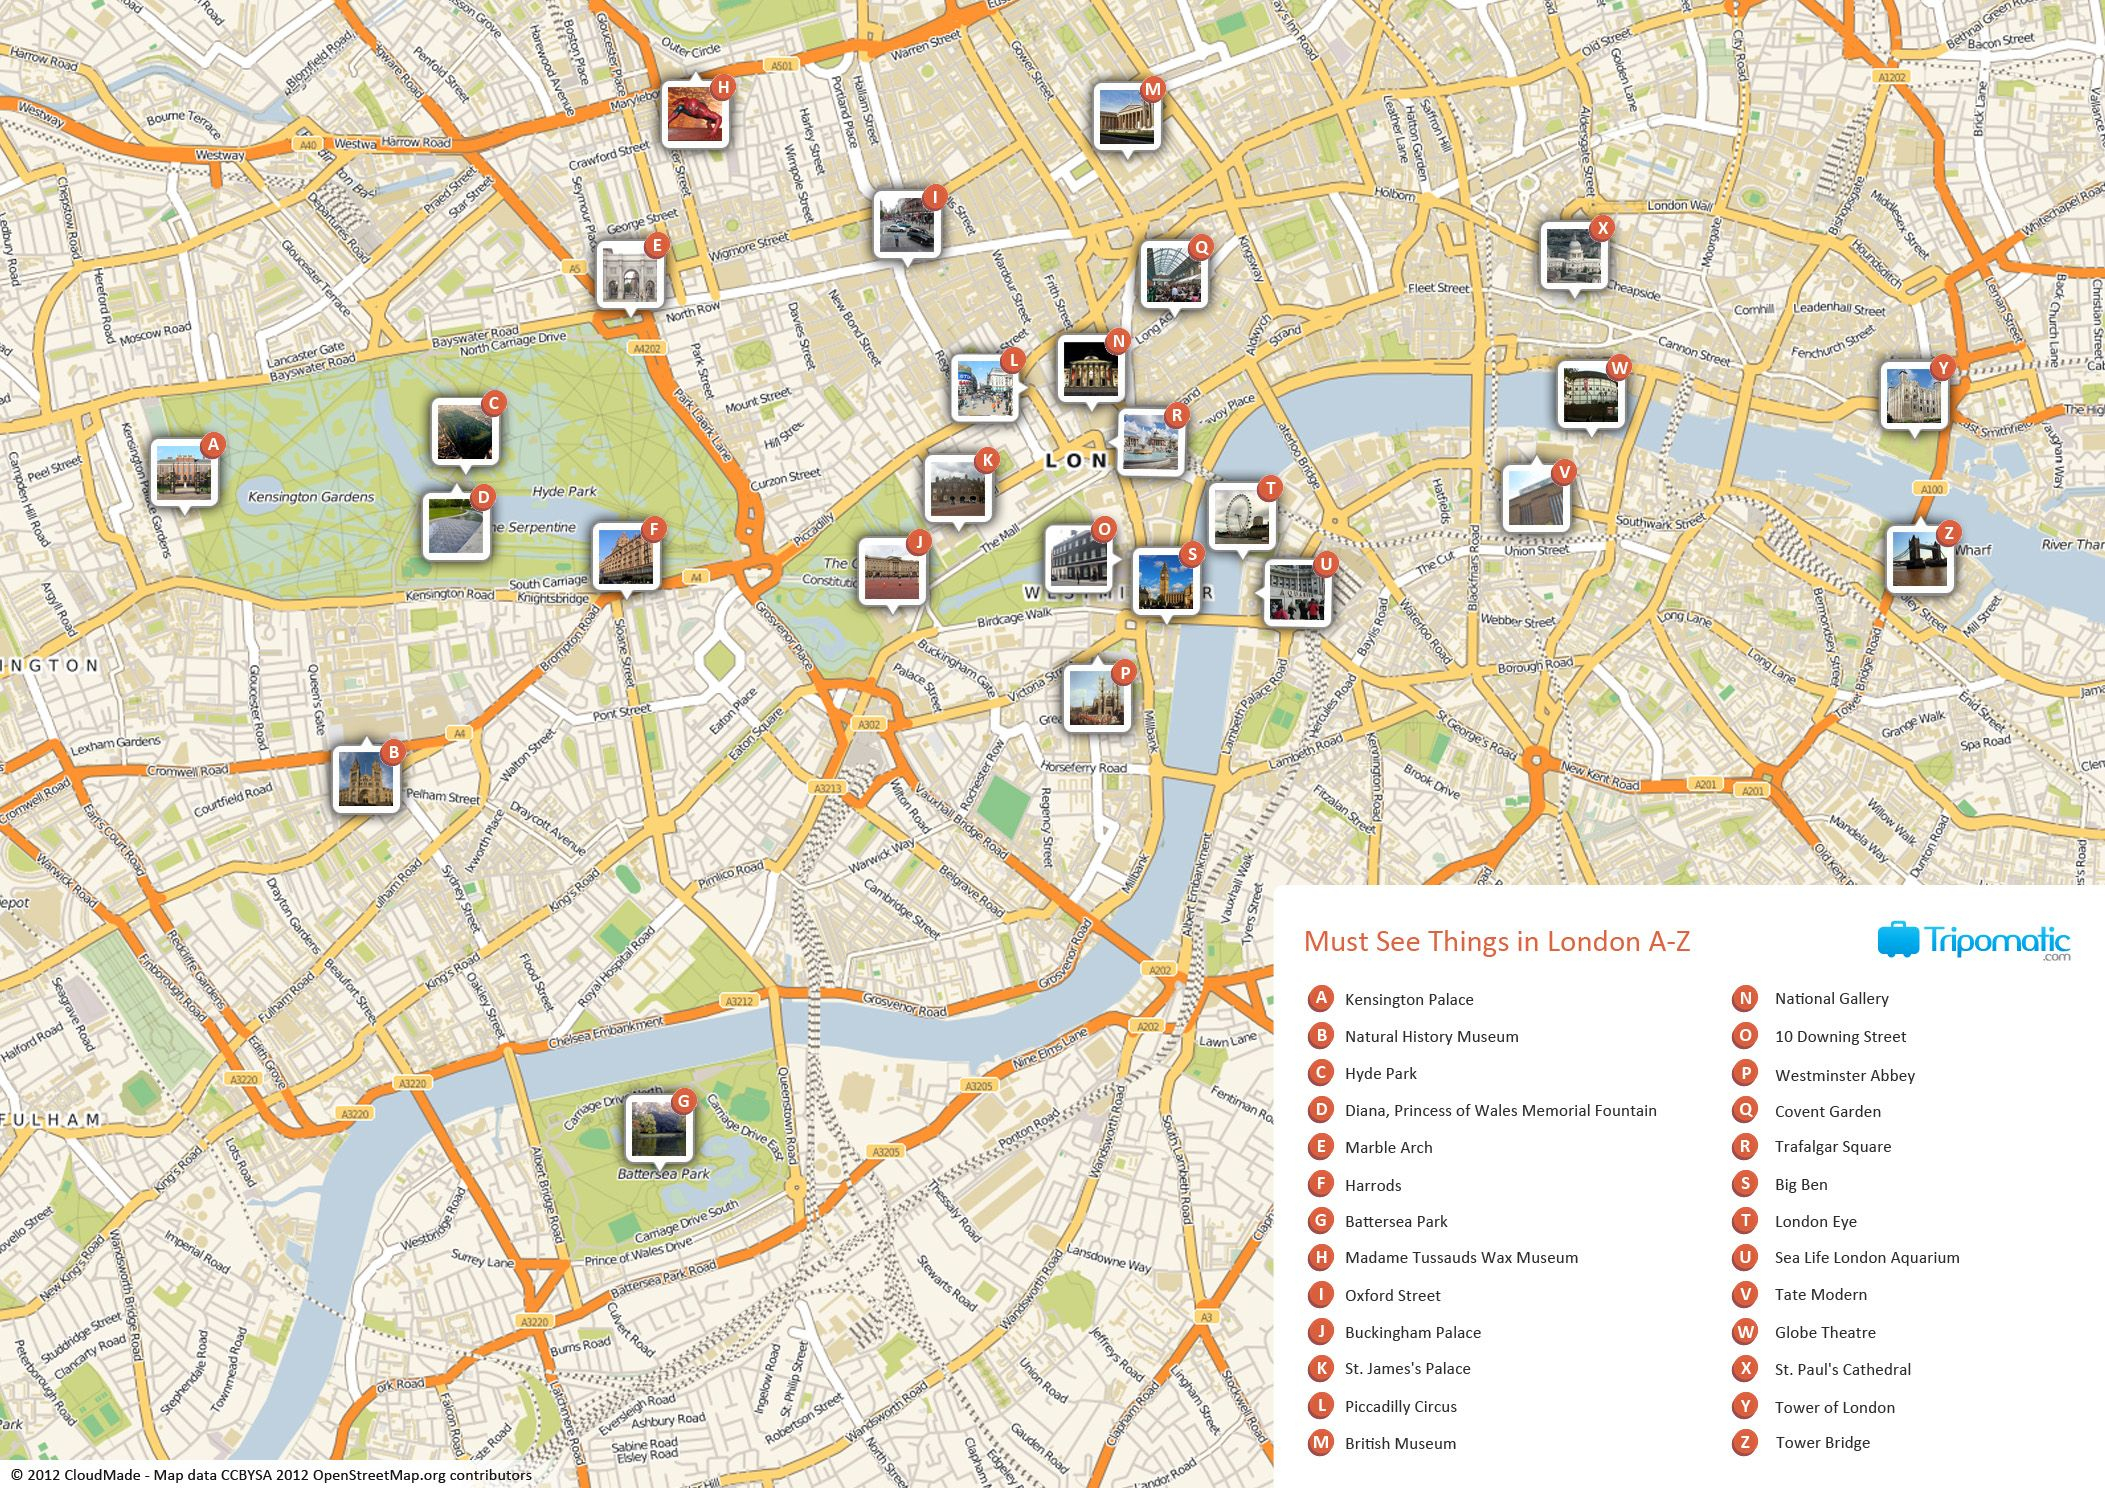 Map Of London With Must See Sights And Attractions. Free Printable - Printable Tourist Map Of London Attractions